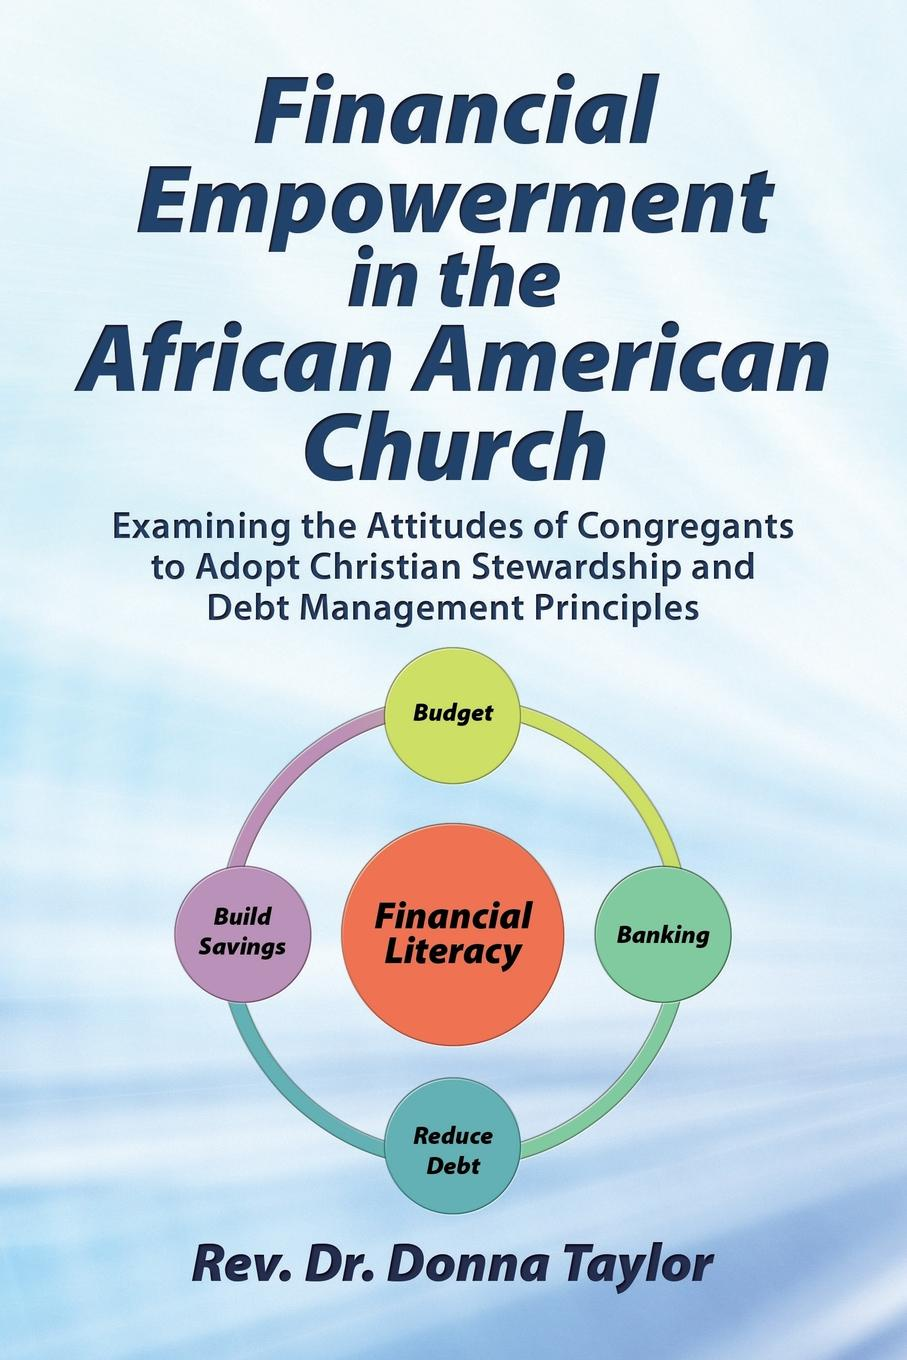 Rev. Dr. Donna Taylor Financial Empowerment in the African American Church. Examining the Attitudes of Congregants to Adopt Christian Stewardship and Debt Management Principles john thompson b merchants of culture the publishing business in the twenty first century